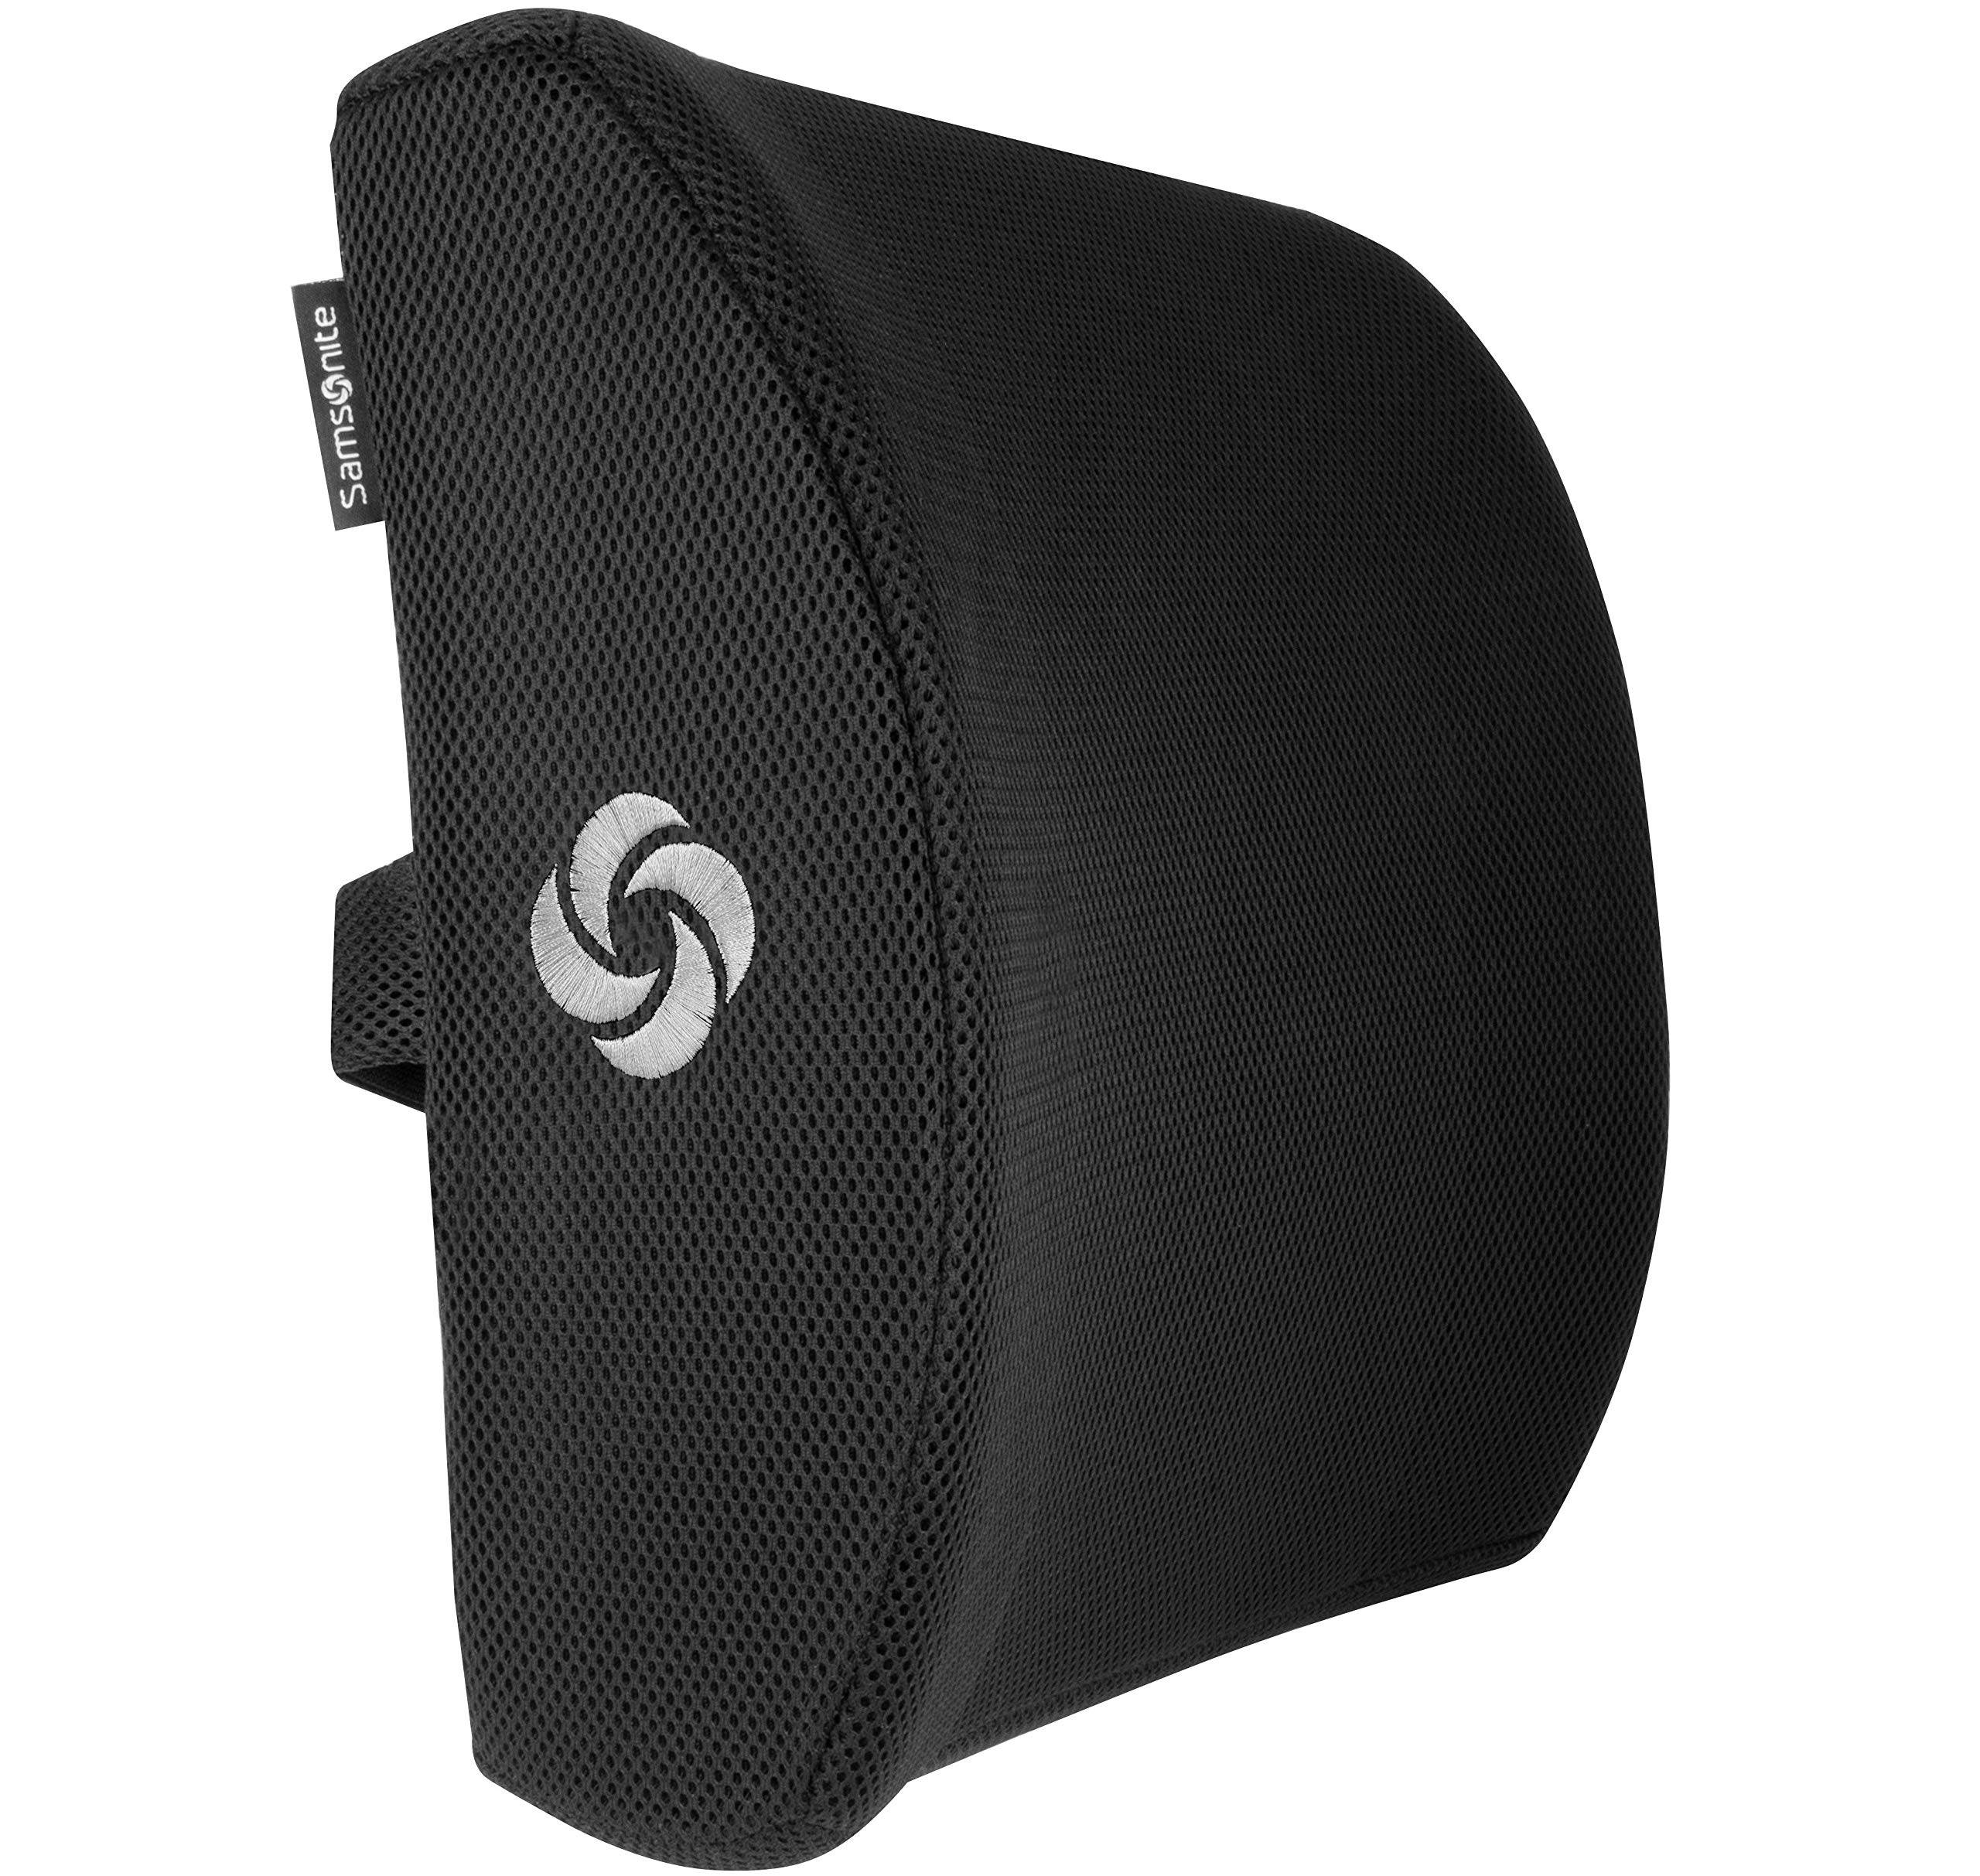 Samsonite SA5243 - Ergonomic Lumbar Support Pillow - Helps Relieve Lower Back Pain - 100% Pure Memory Foam - Improves Posture - Fits Most Seats - Breathable Mesh - Washable Cover - Adjustable Strap by Samsonite (Image #2)